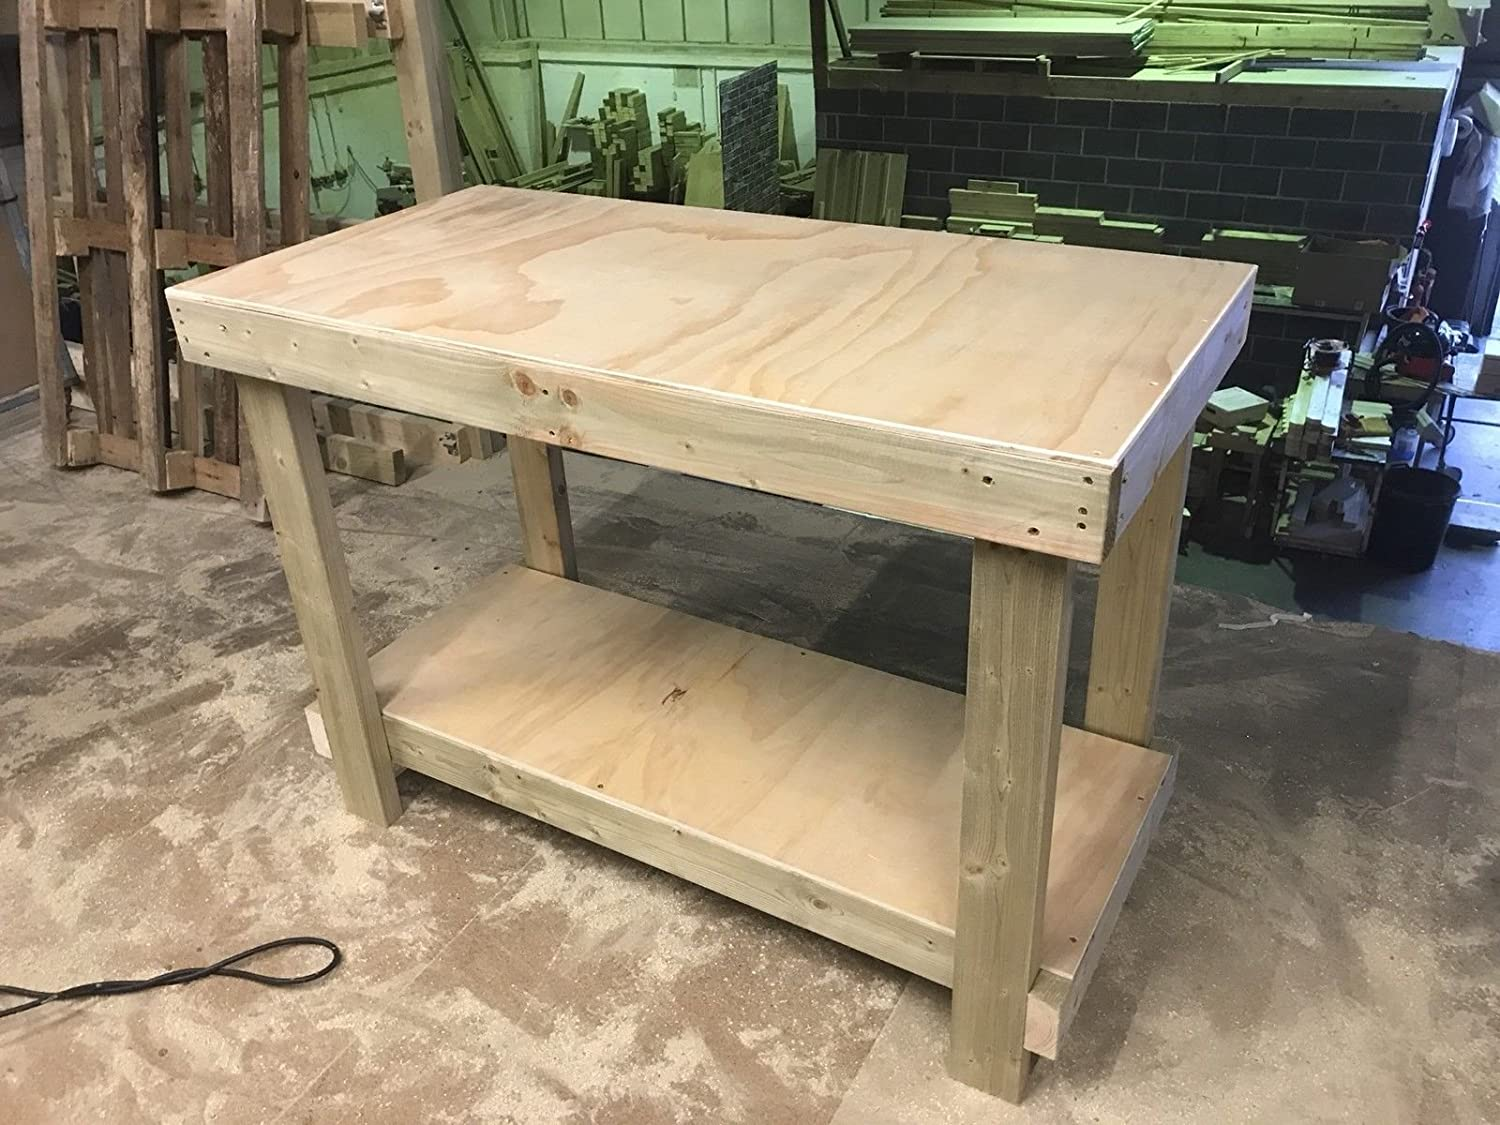 MC TIMBER PRODUCTS LTD 4FT WOODEN WORK BENCH WITH 12mm PLYWOOD SURFACE AND LOWER STORAGE SHELF